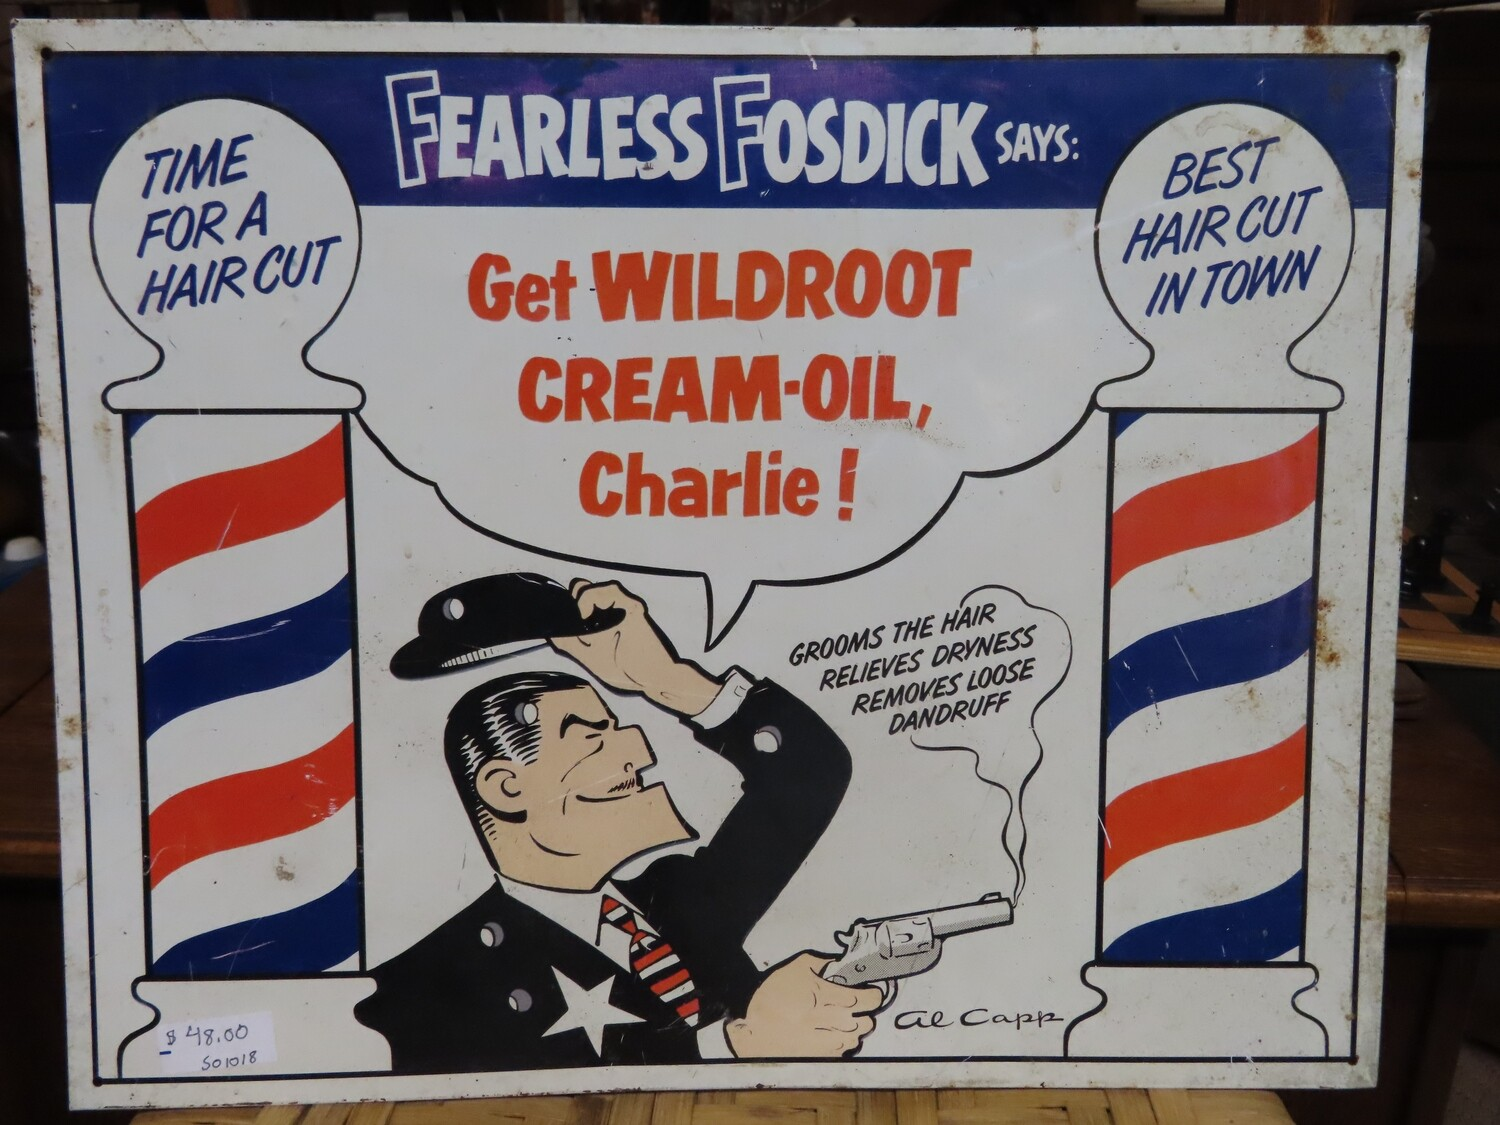 Vintage Fearless Fosdick Wildroot Hair Sign